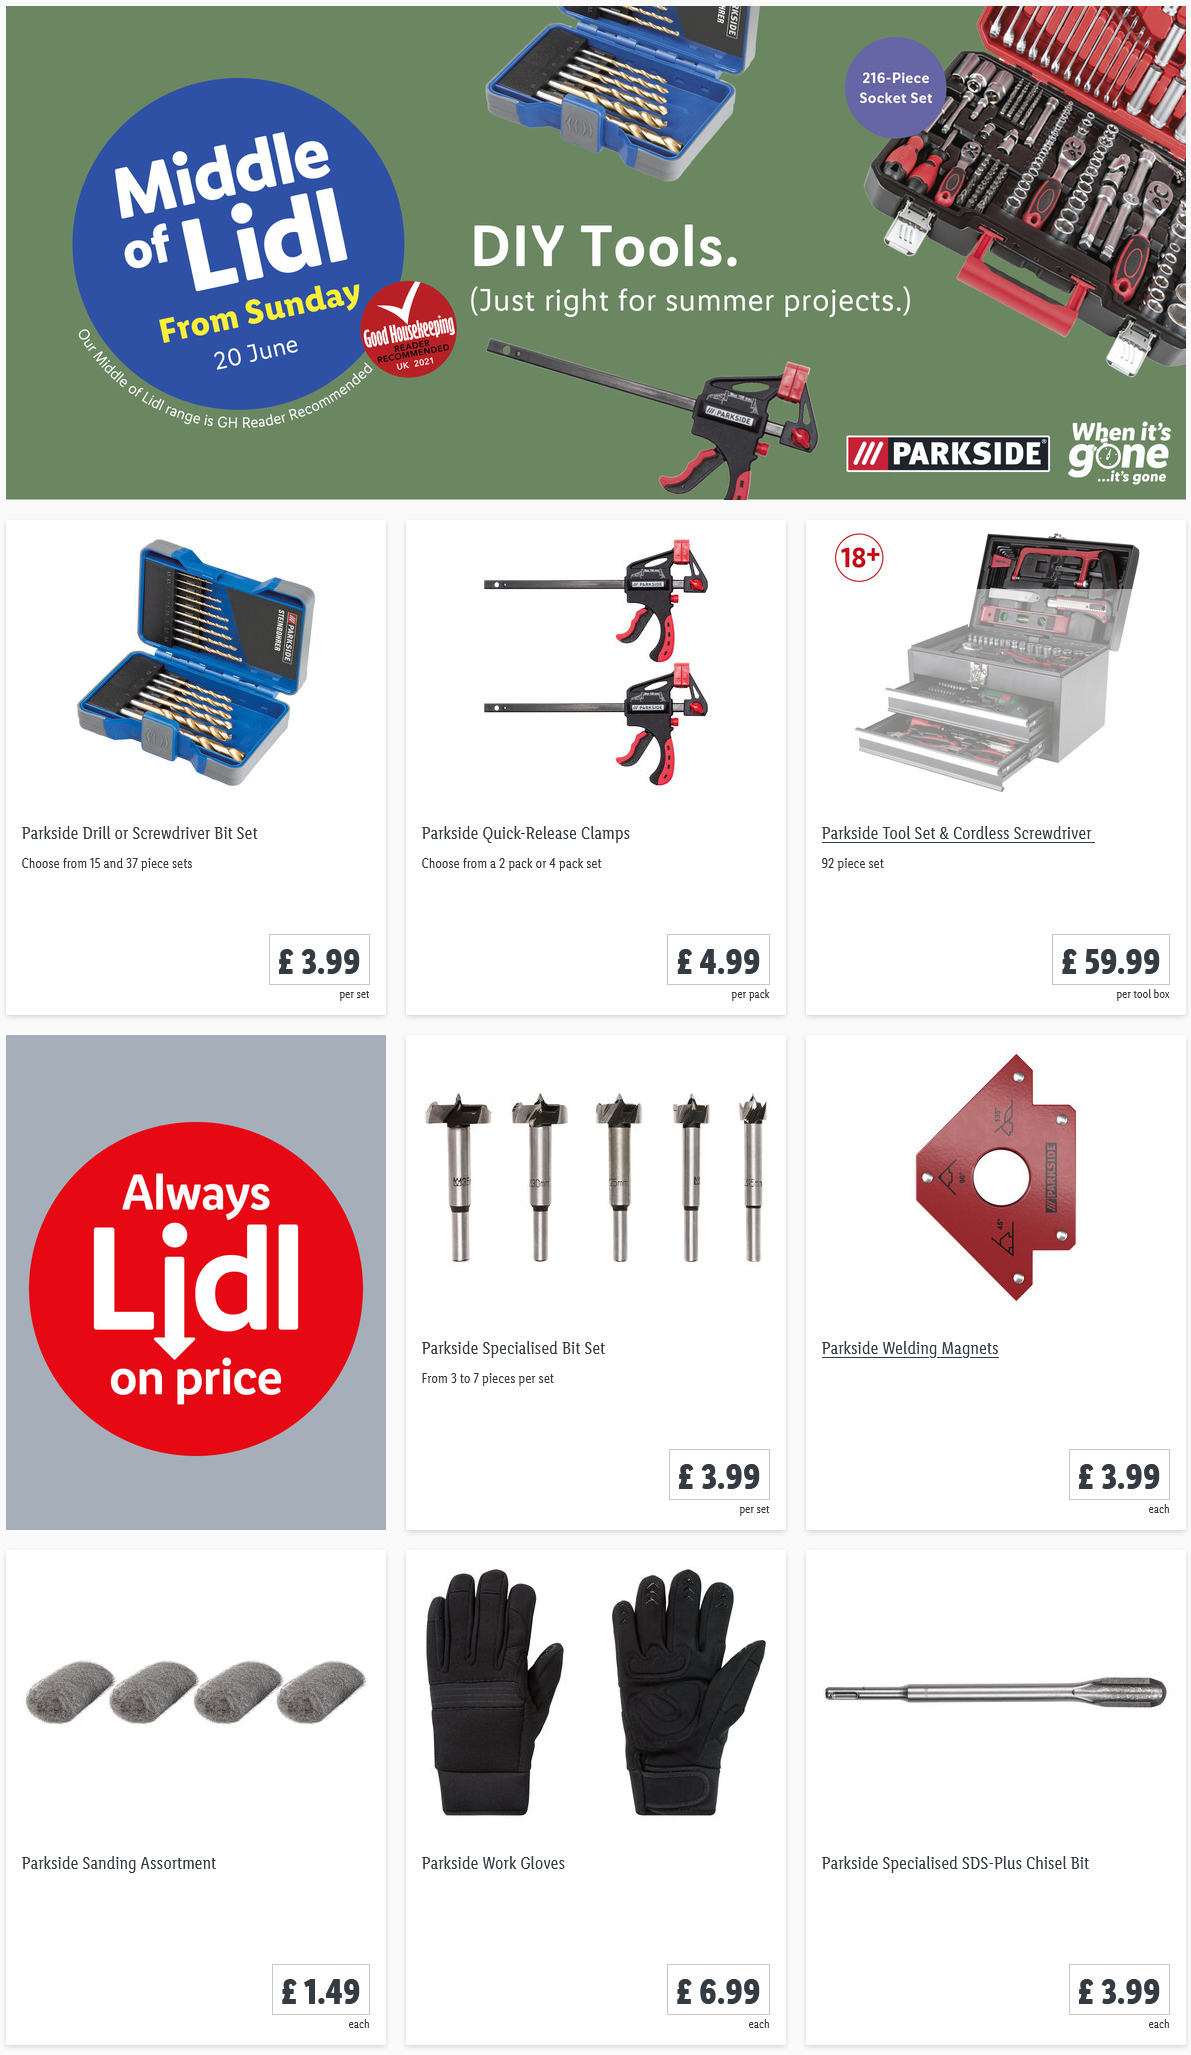 LIDL Sunday Offers DIY Tools from 20th June 2021